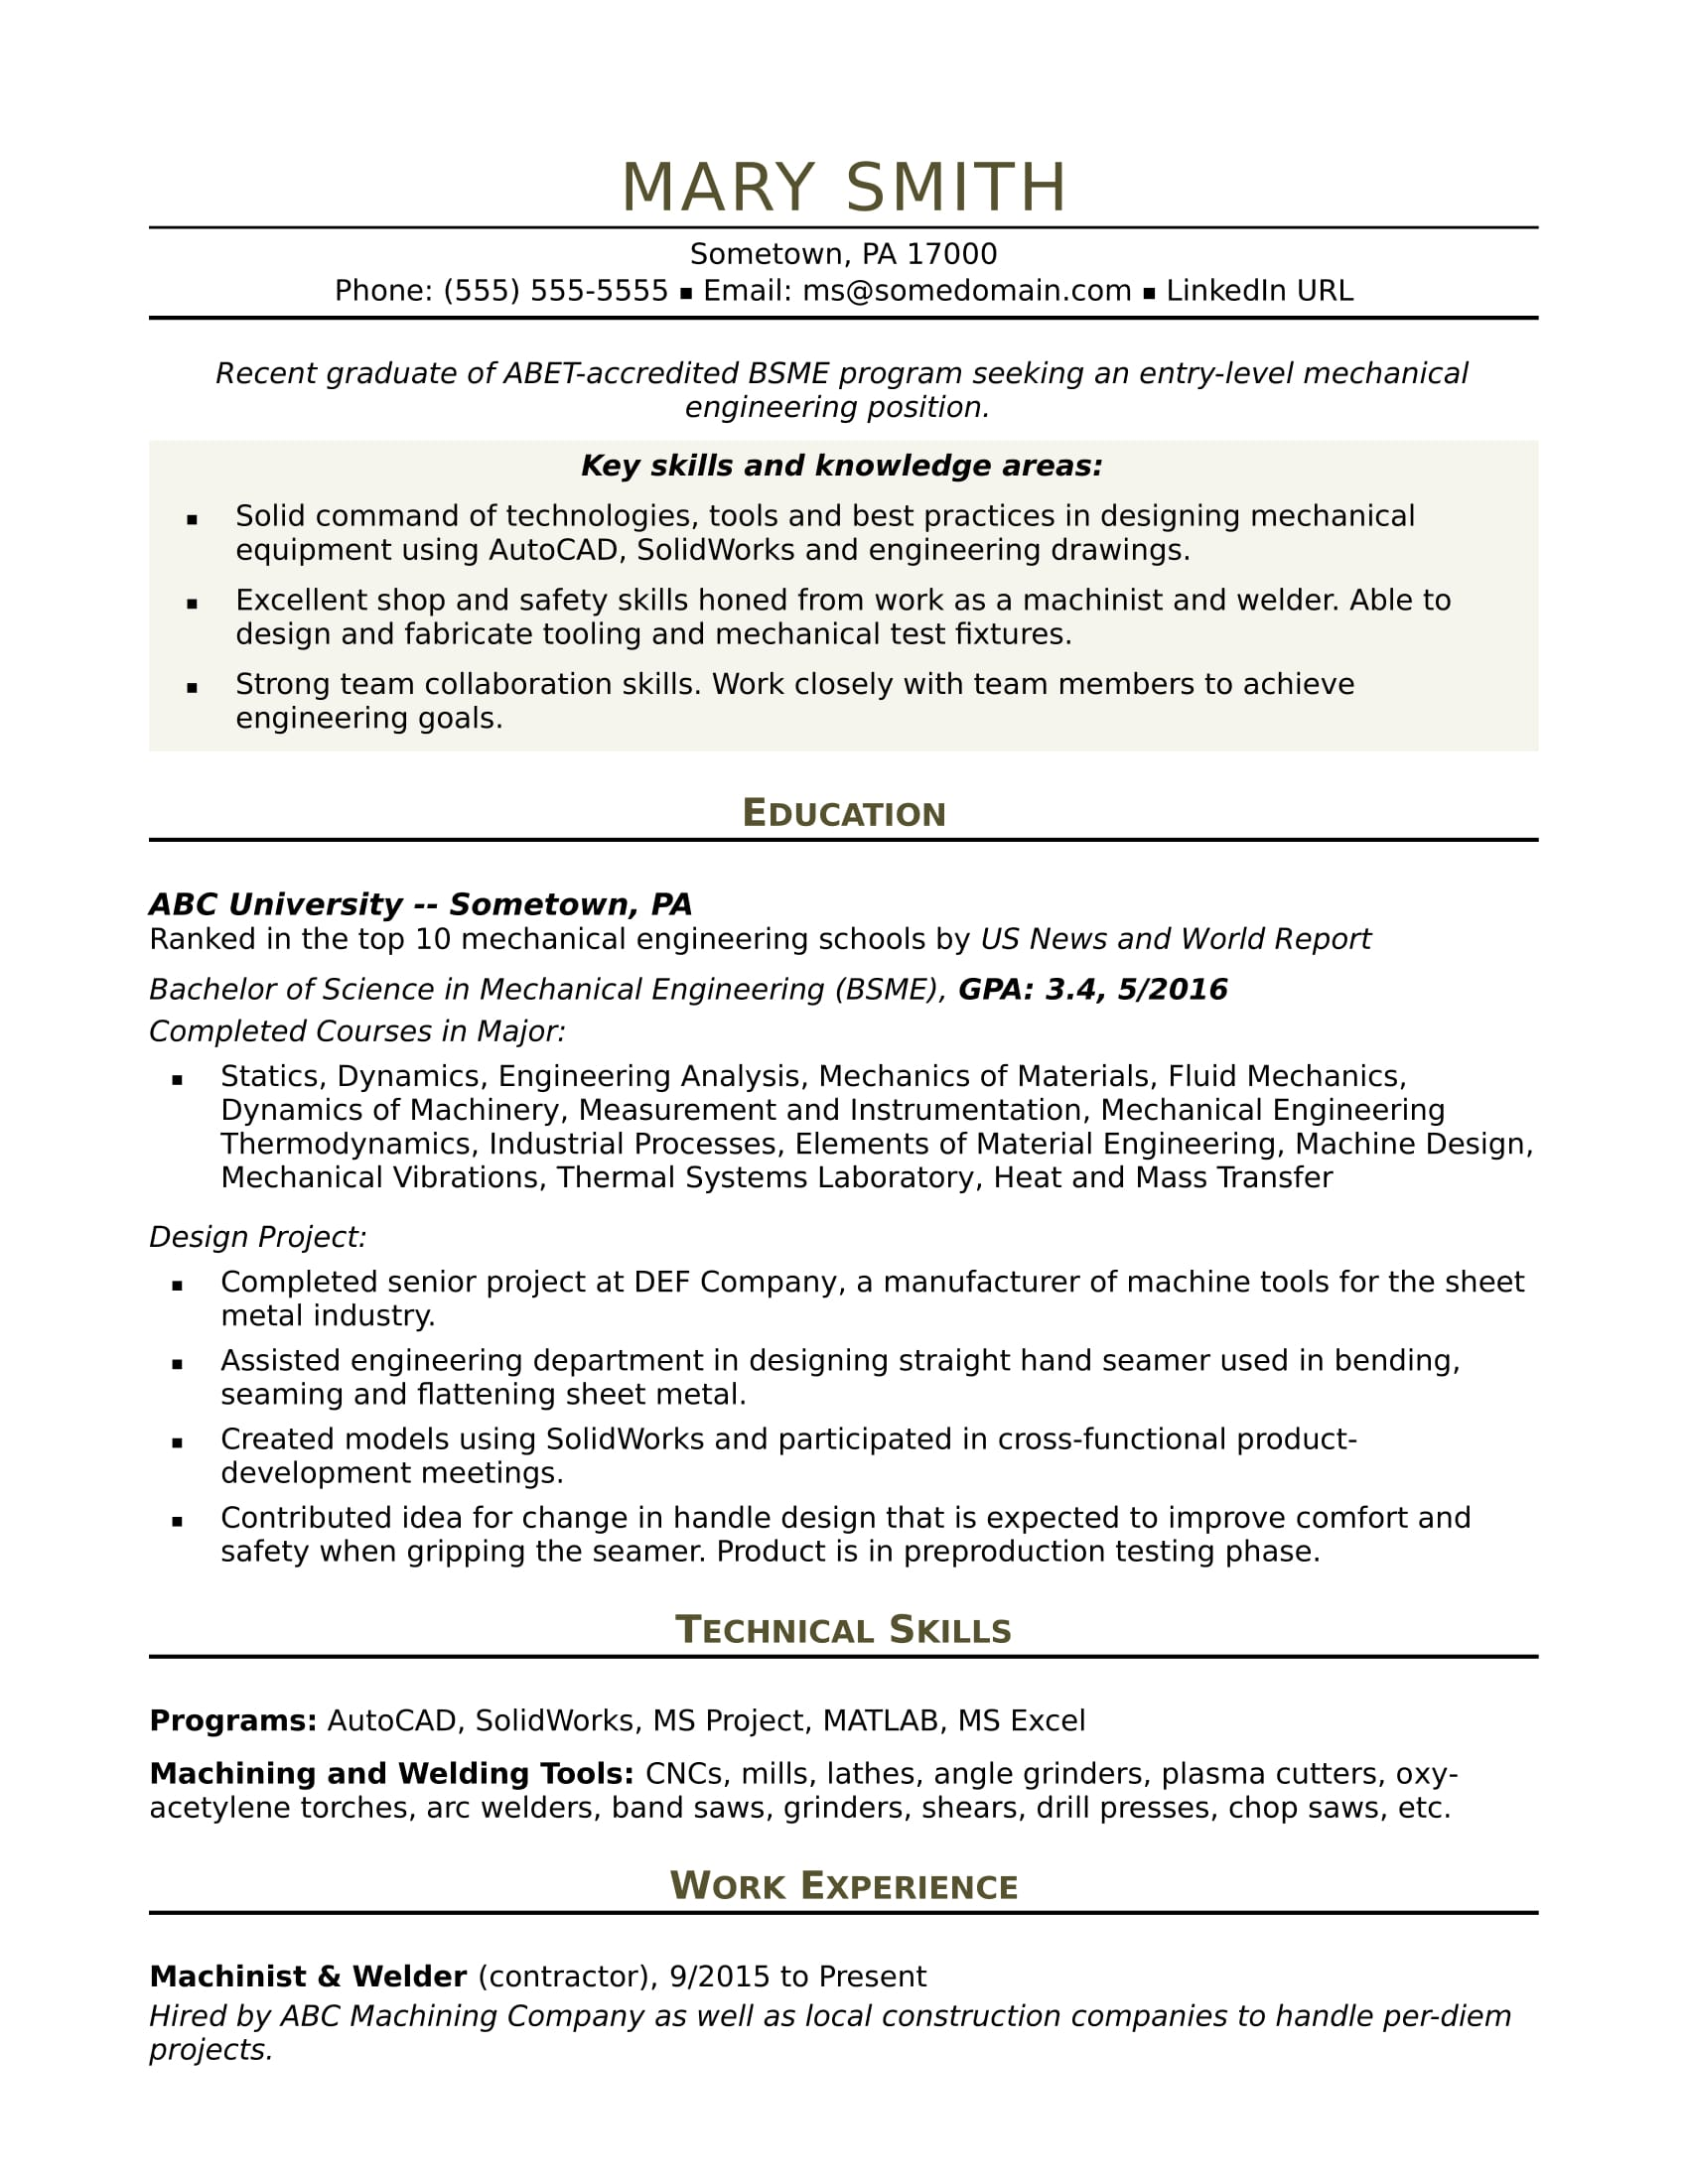 sample resume for an entry level mechanical engineer - How To Write A Entry Level Resume